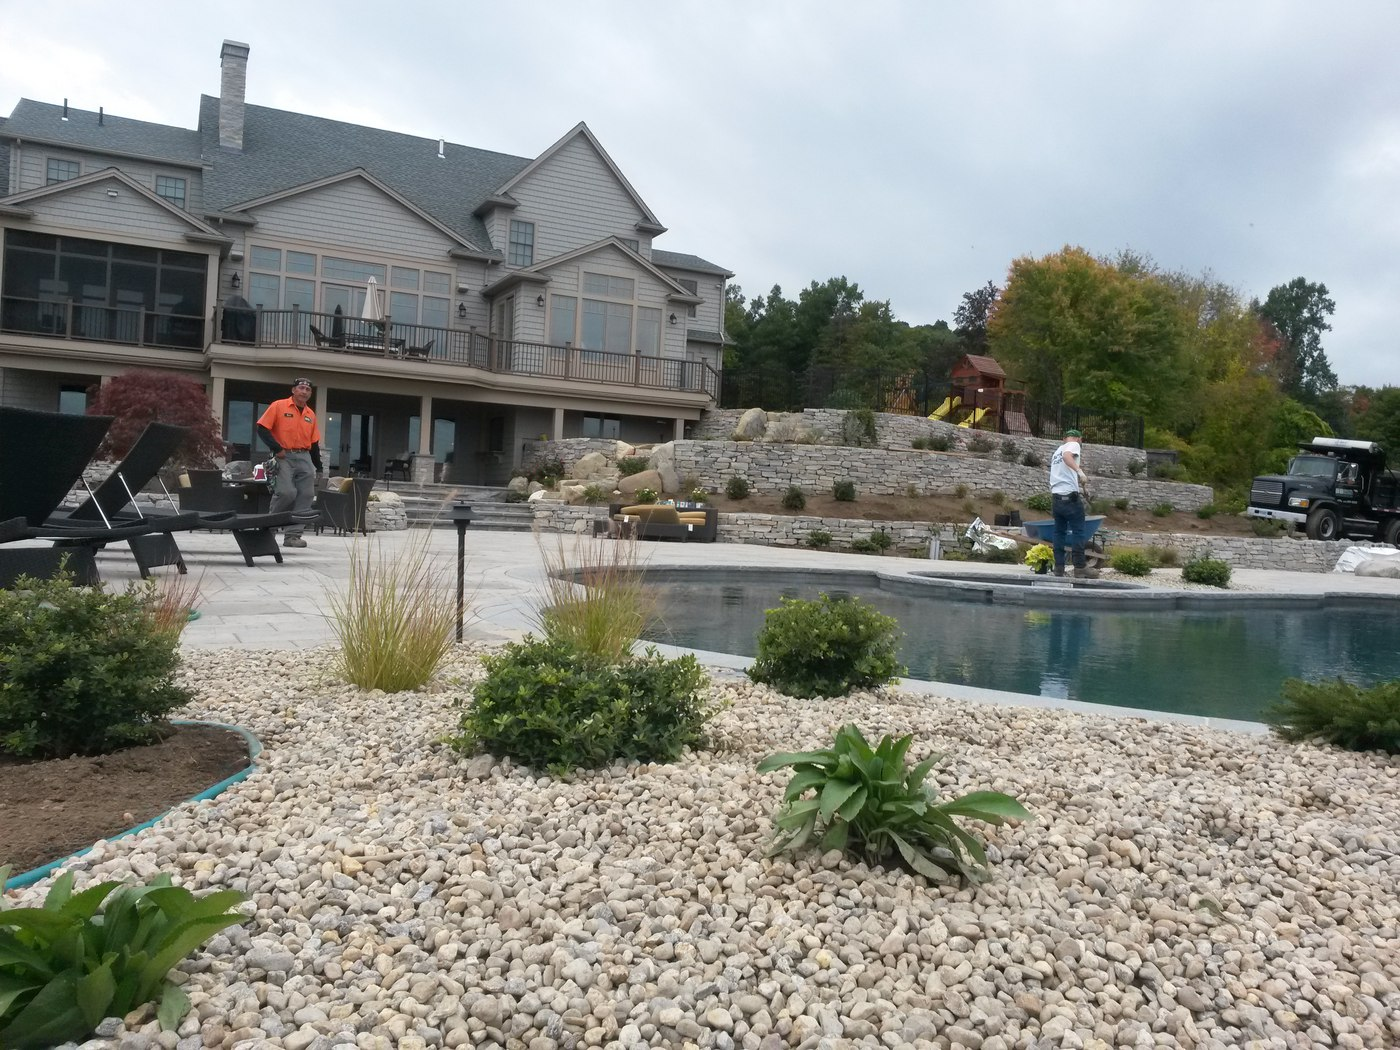 Natural Stone Walls and patio by Bahler Brothers serving MA and CT